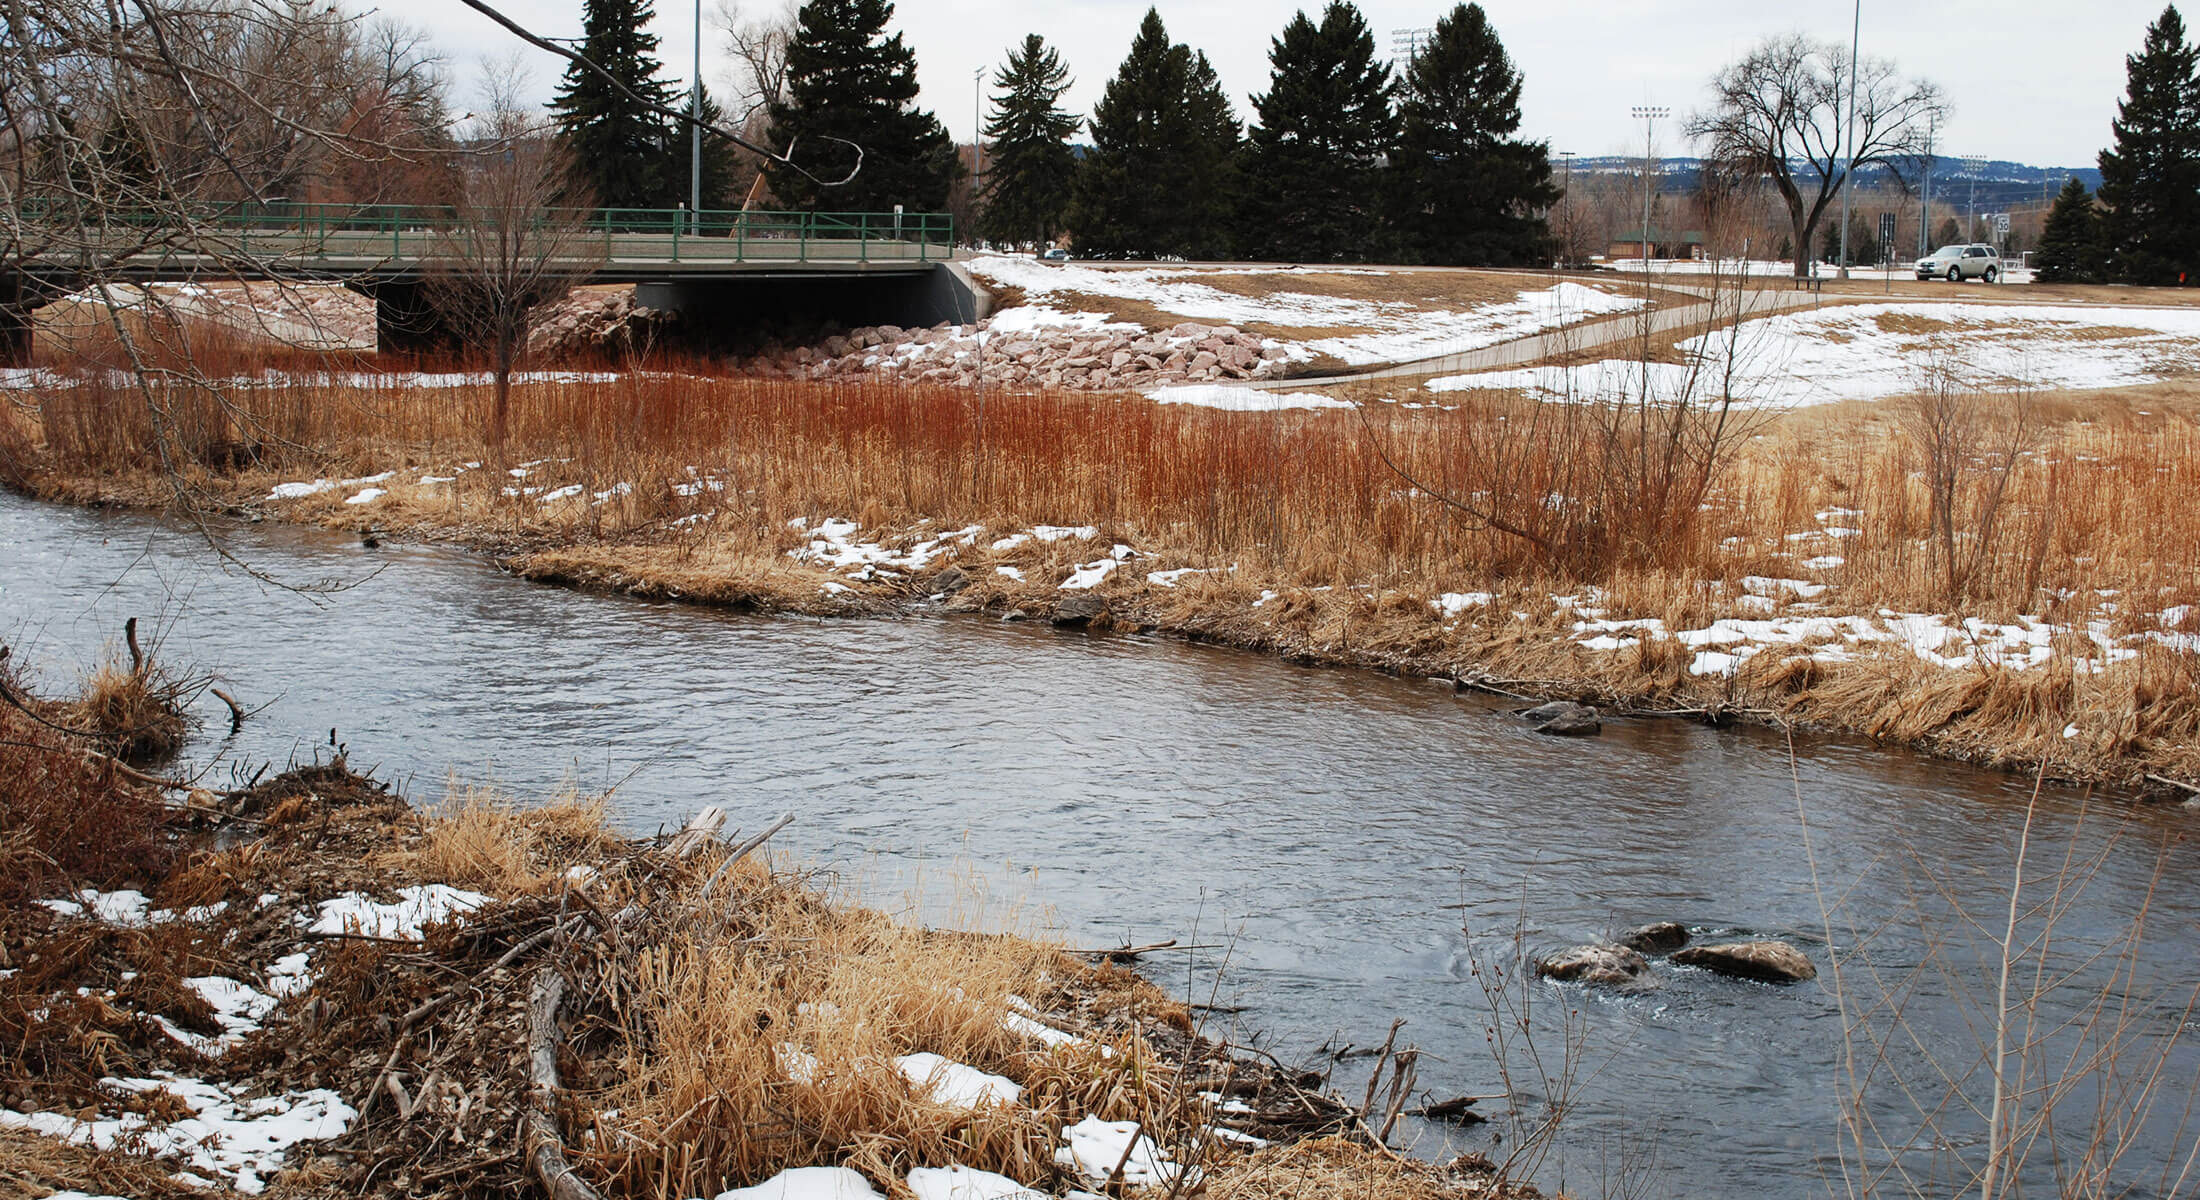 Rapid Creek Fishing Location in Rapid City